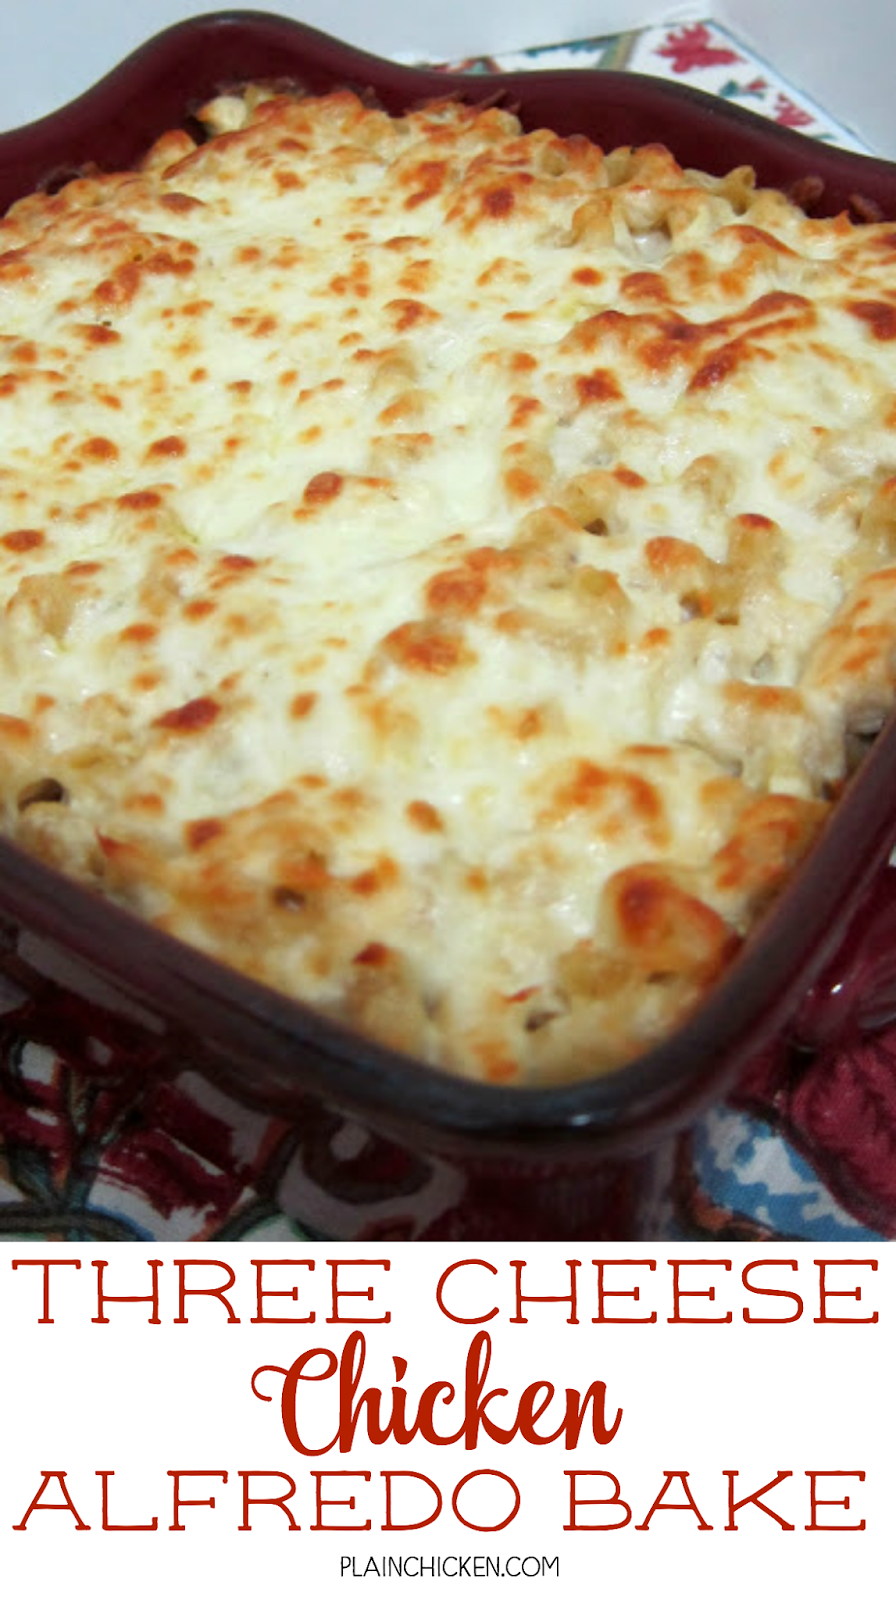 Baked Chicken Recipes Parmesan Cheese